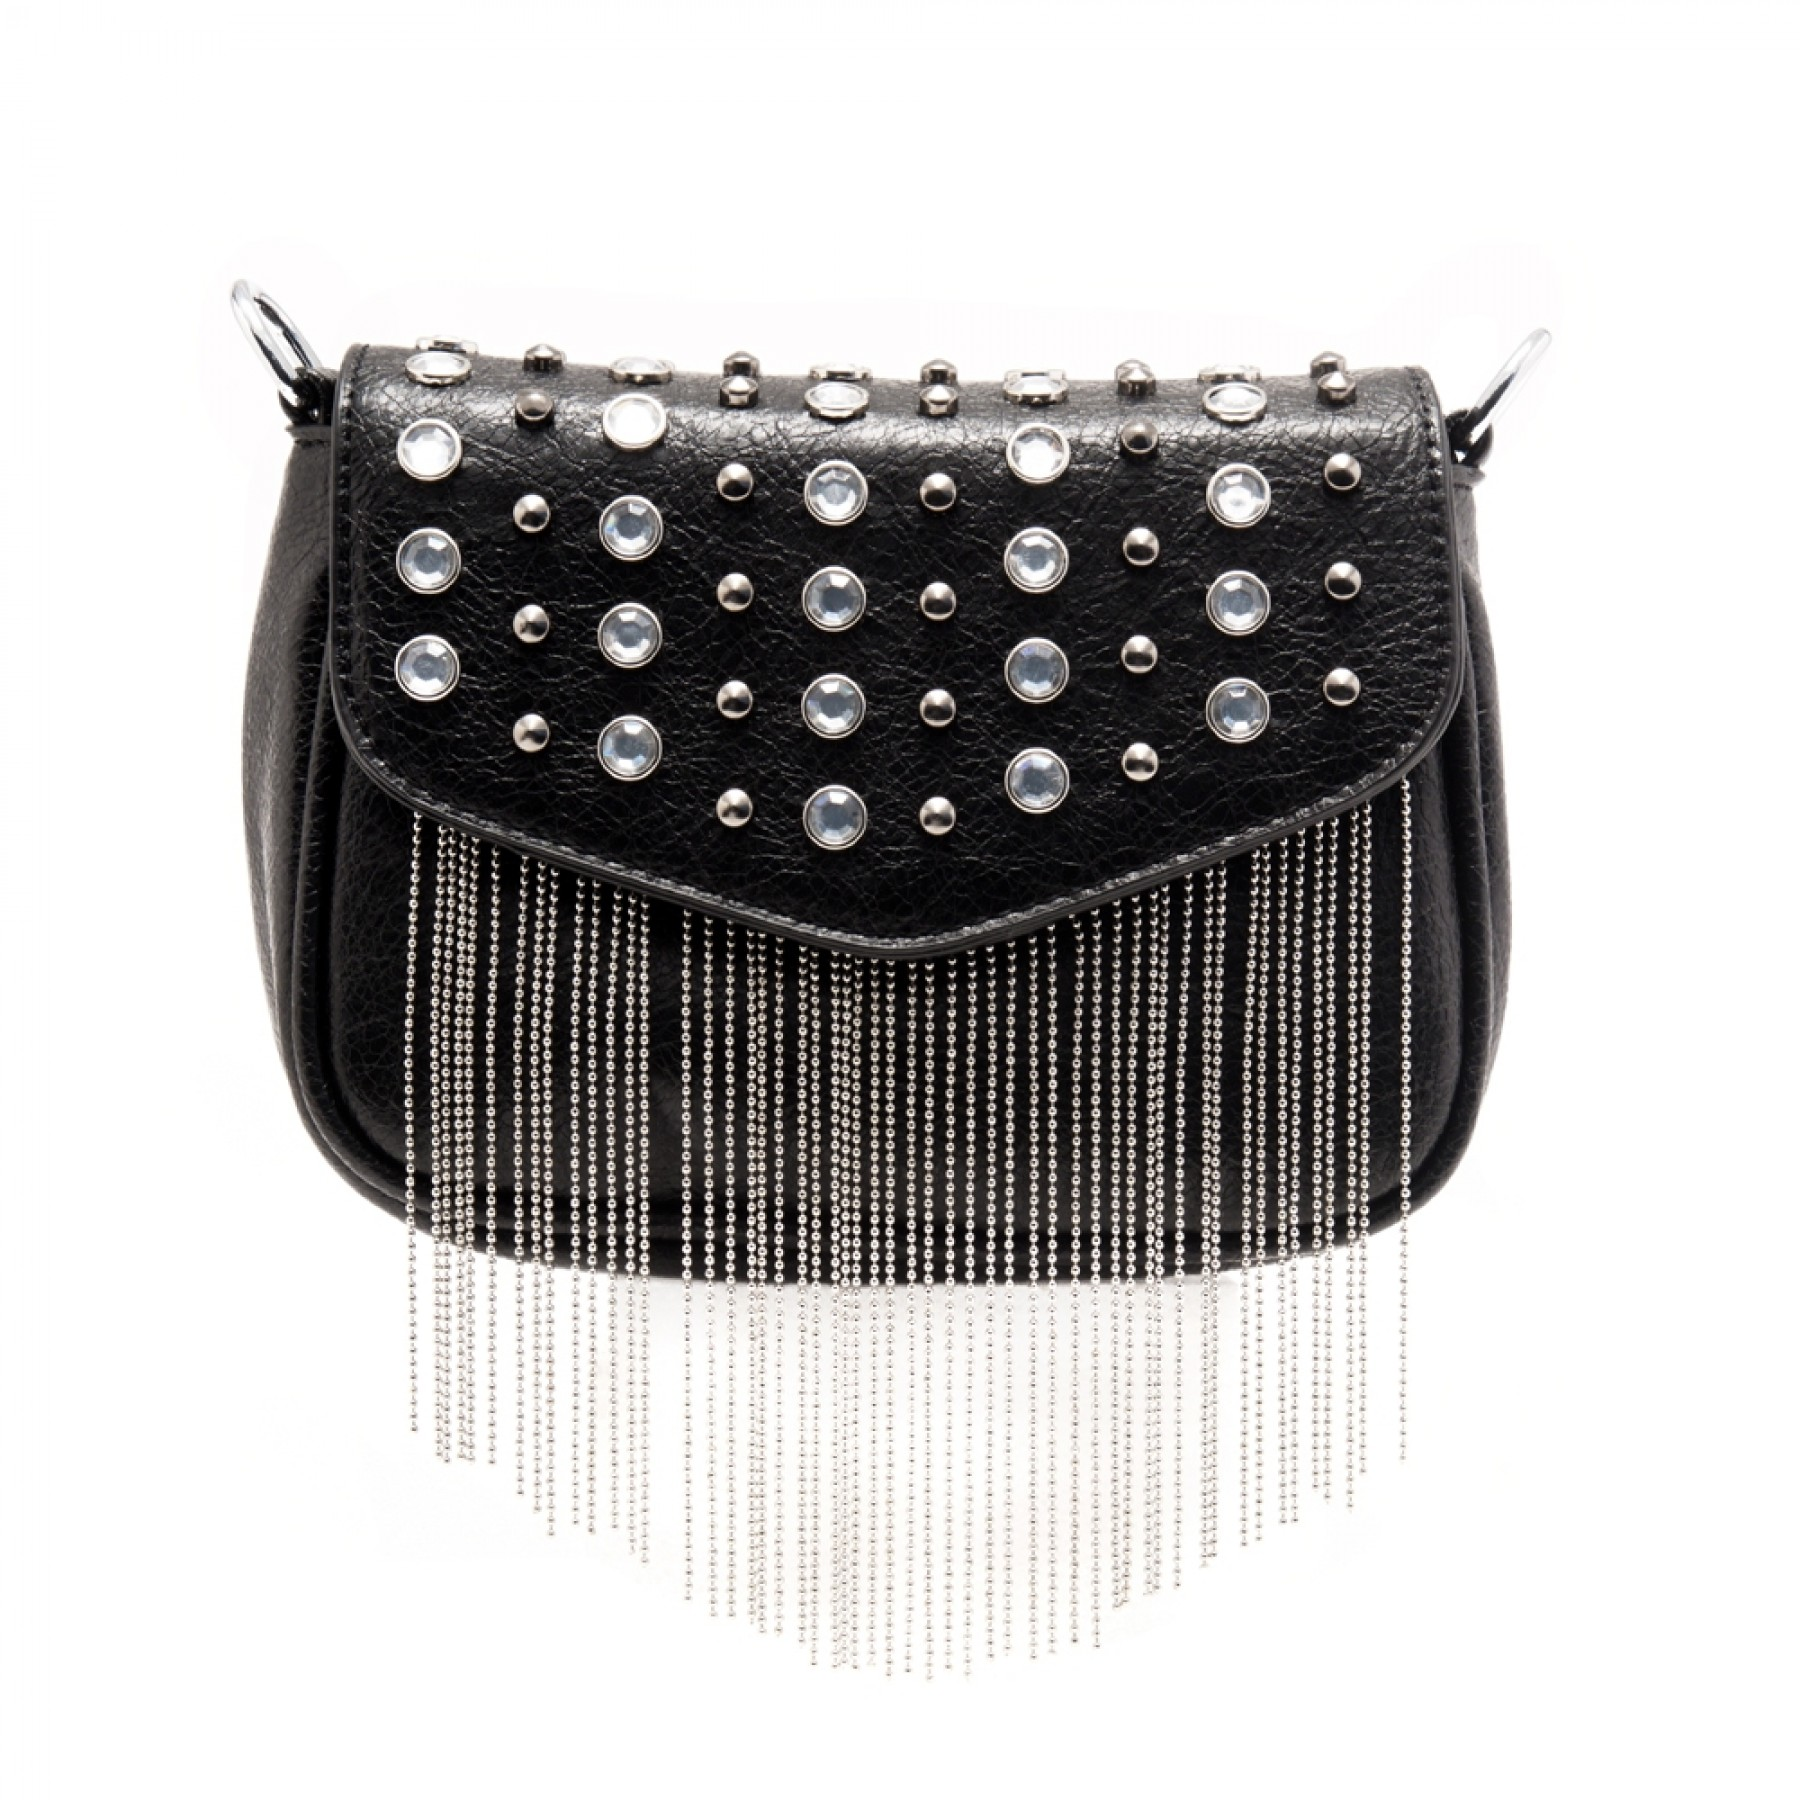 SZ17-LH2-16561 - Women's Crystal Rhinestone Tassels Crossbody Bag (Black)